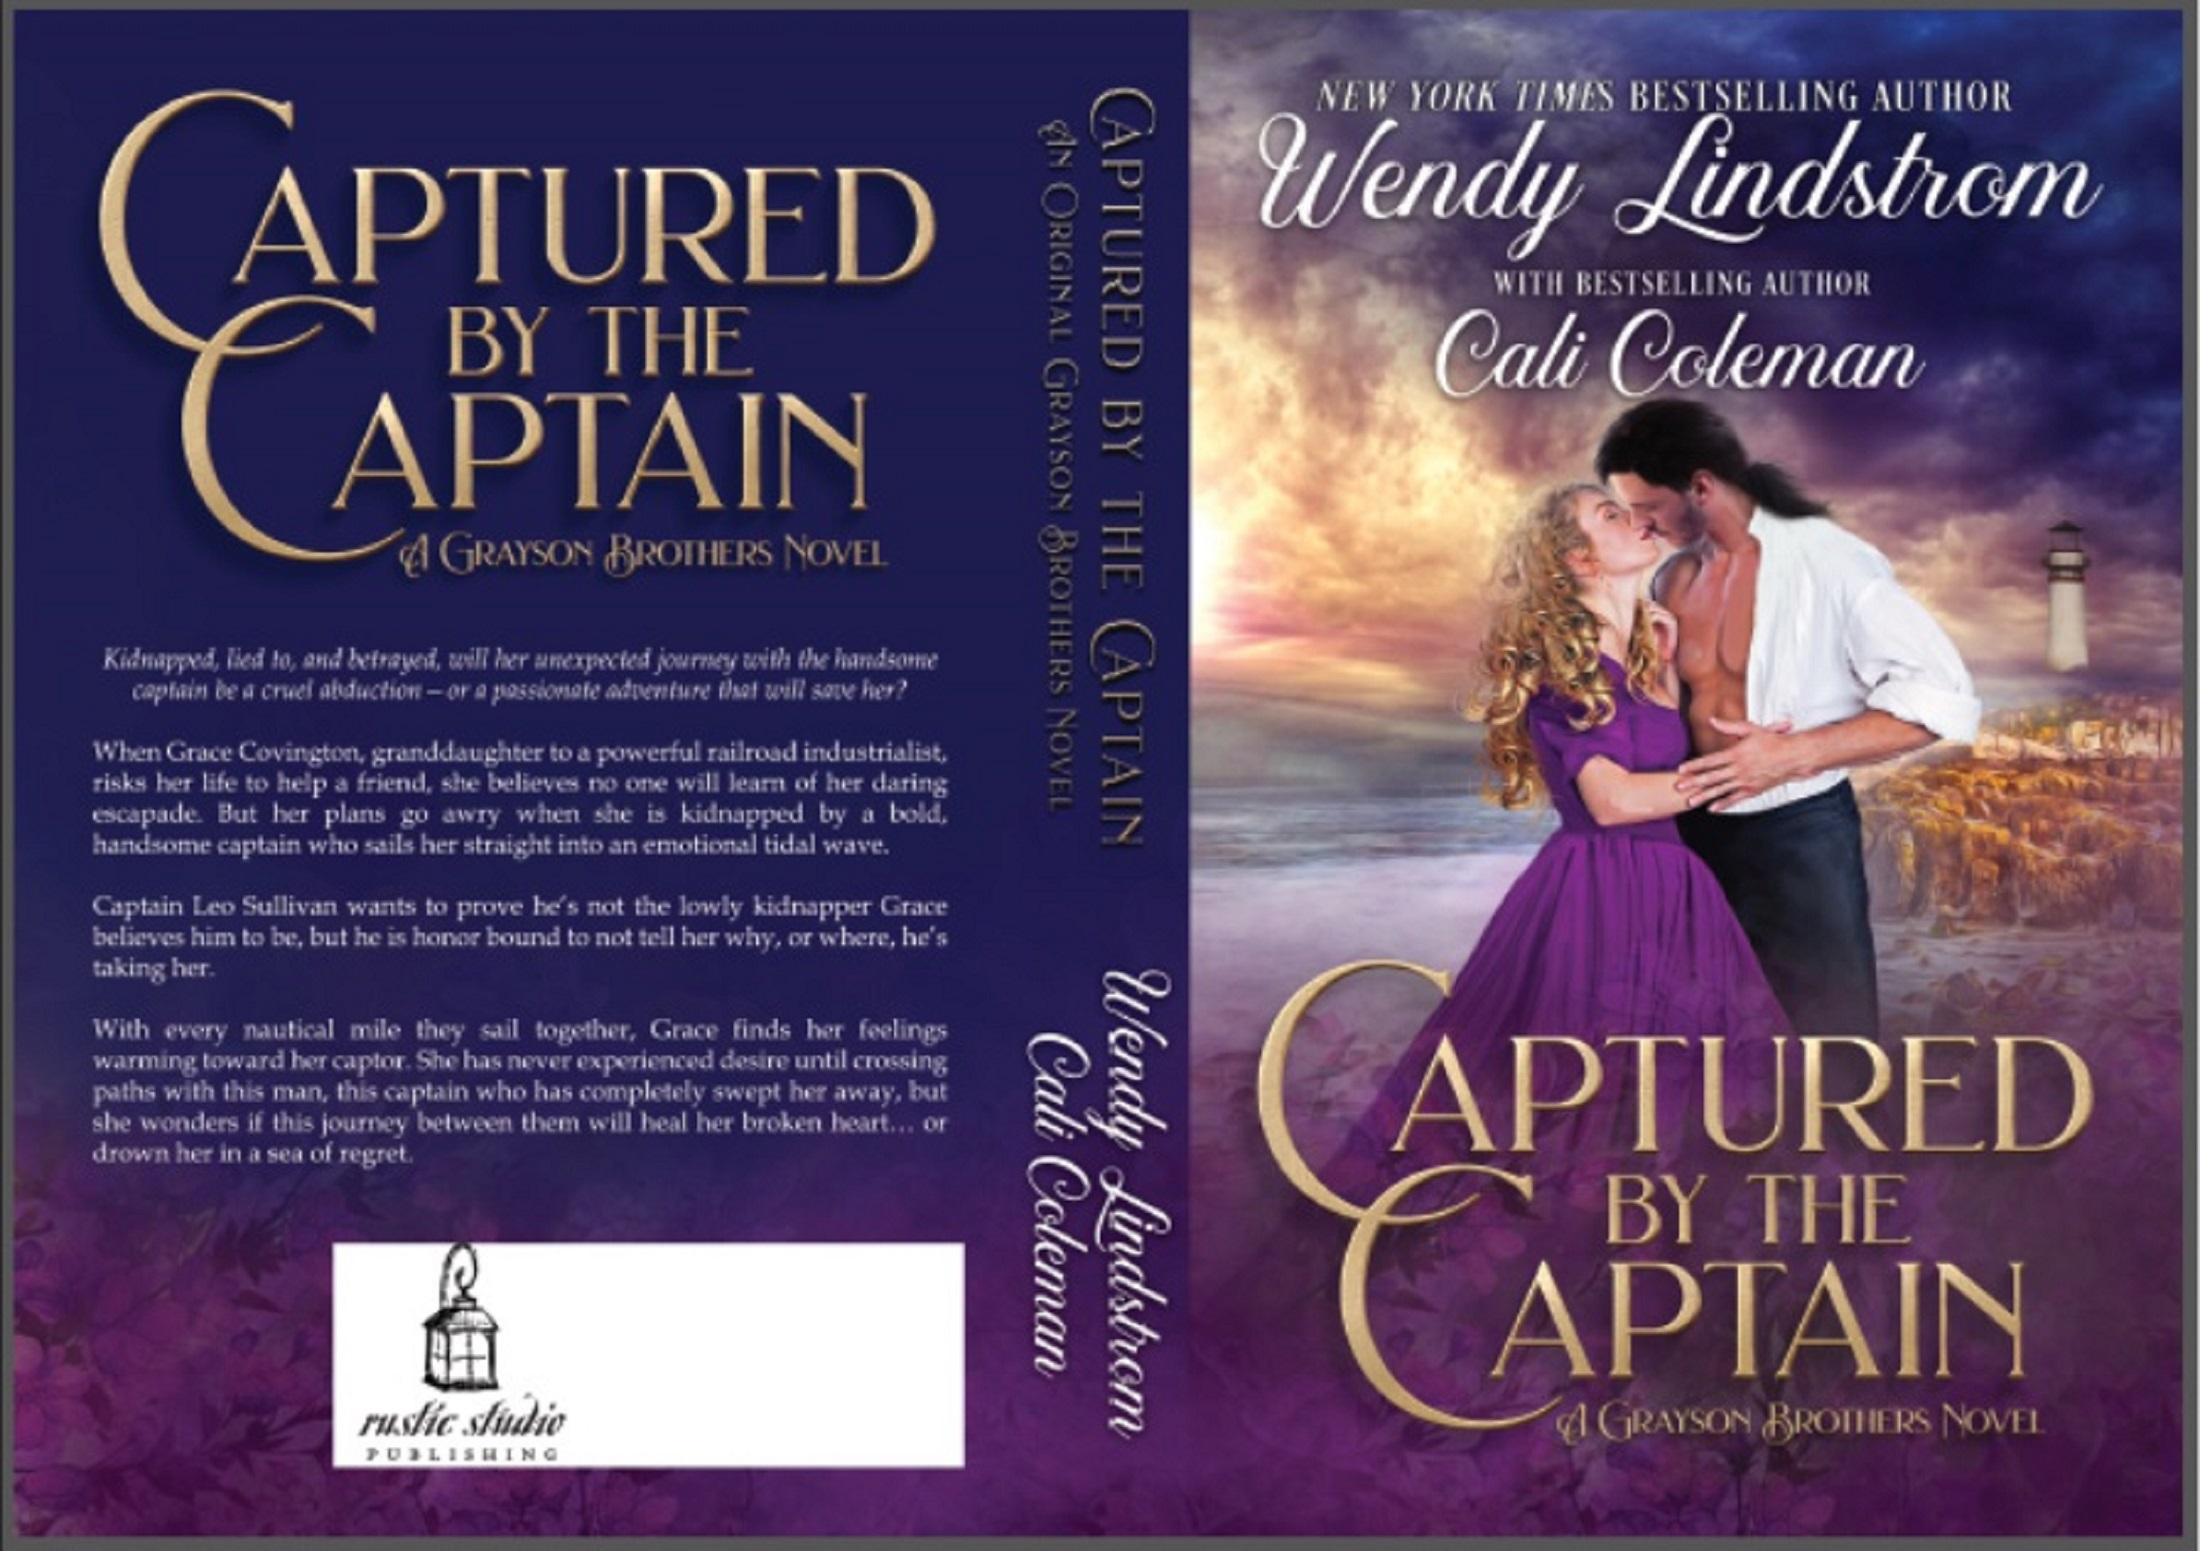 Captured by the Captain Print Cover